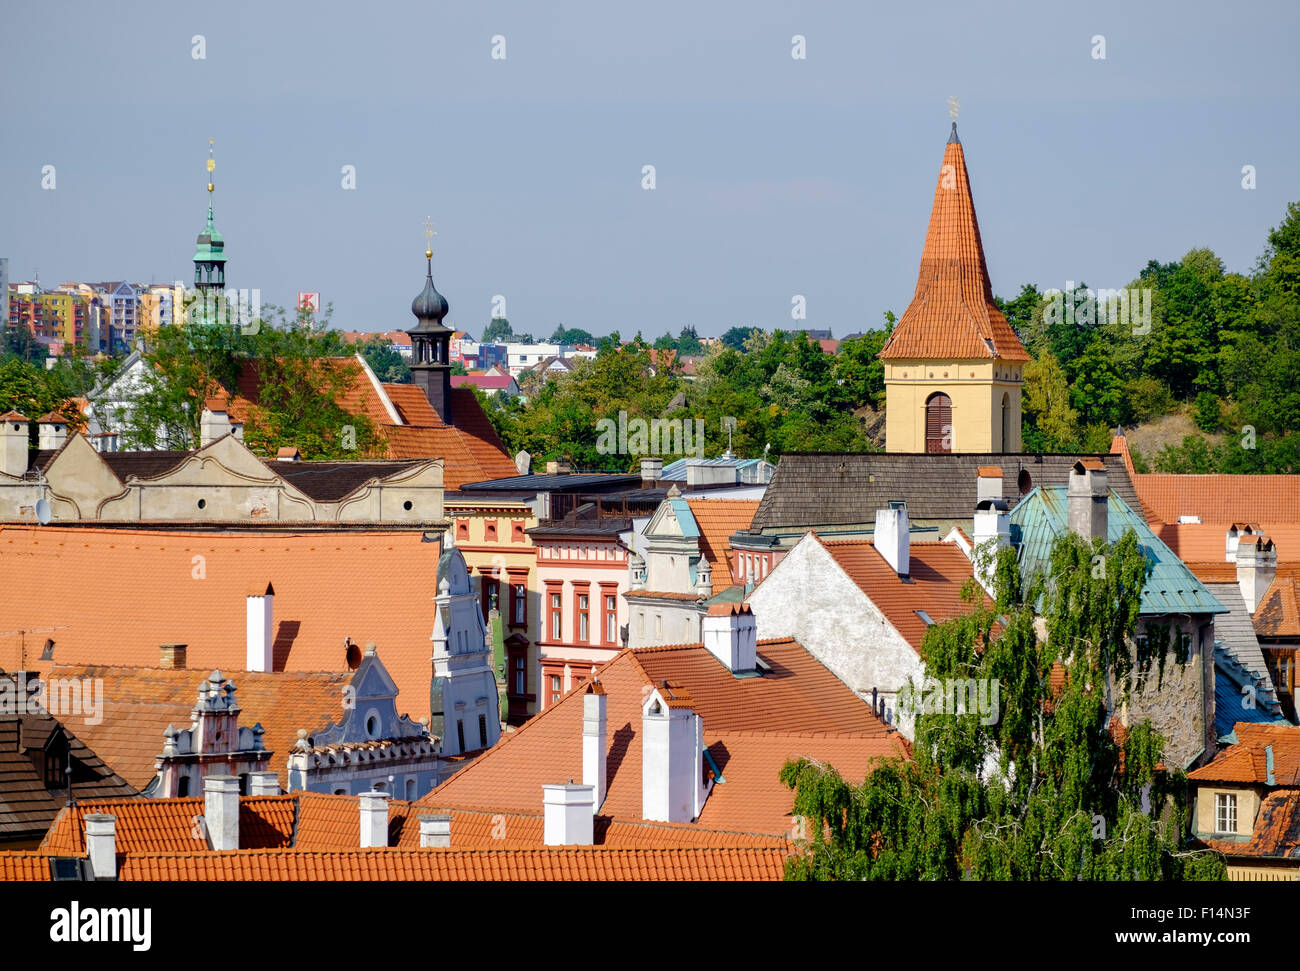 View over the rooftops of Český Krumlov - a UNESCO World Heritage site on the Vltava River in the Czech Republic], - Stock Image